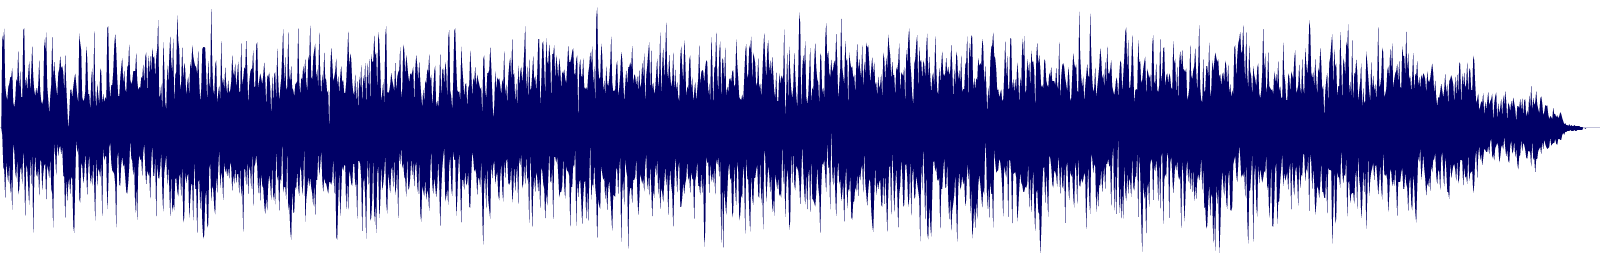 waveform of track #151169